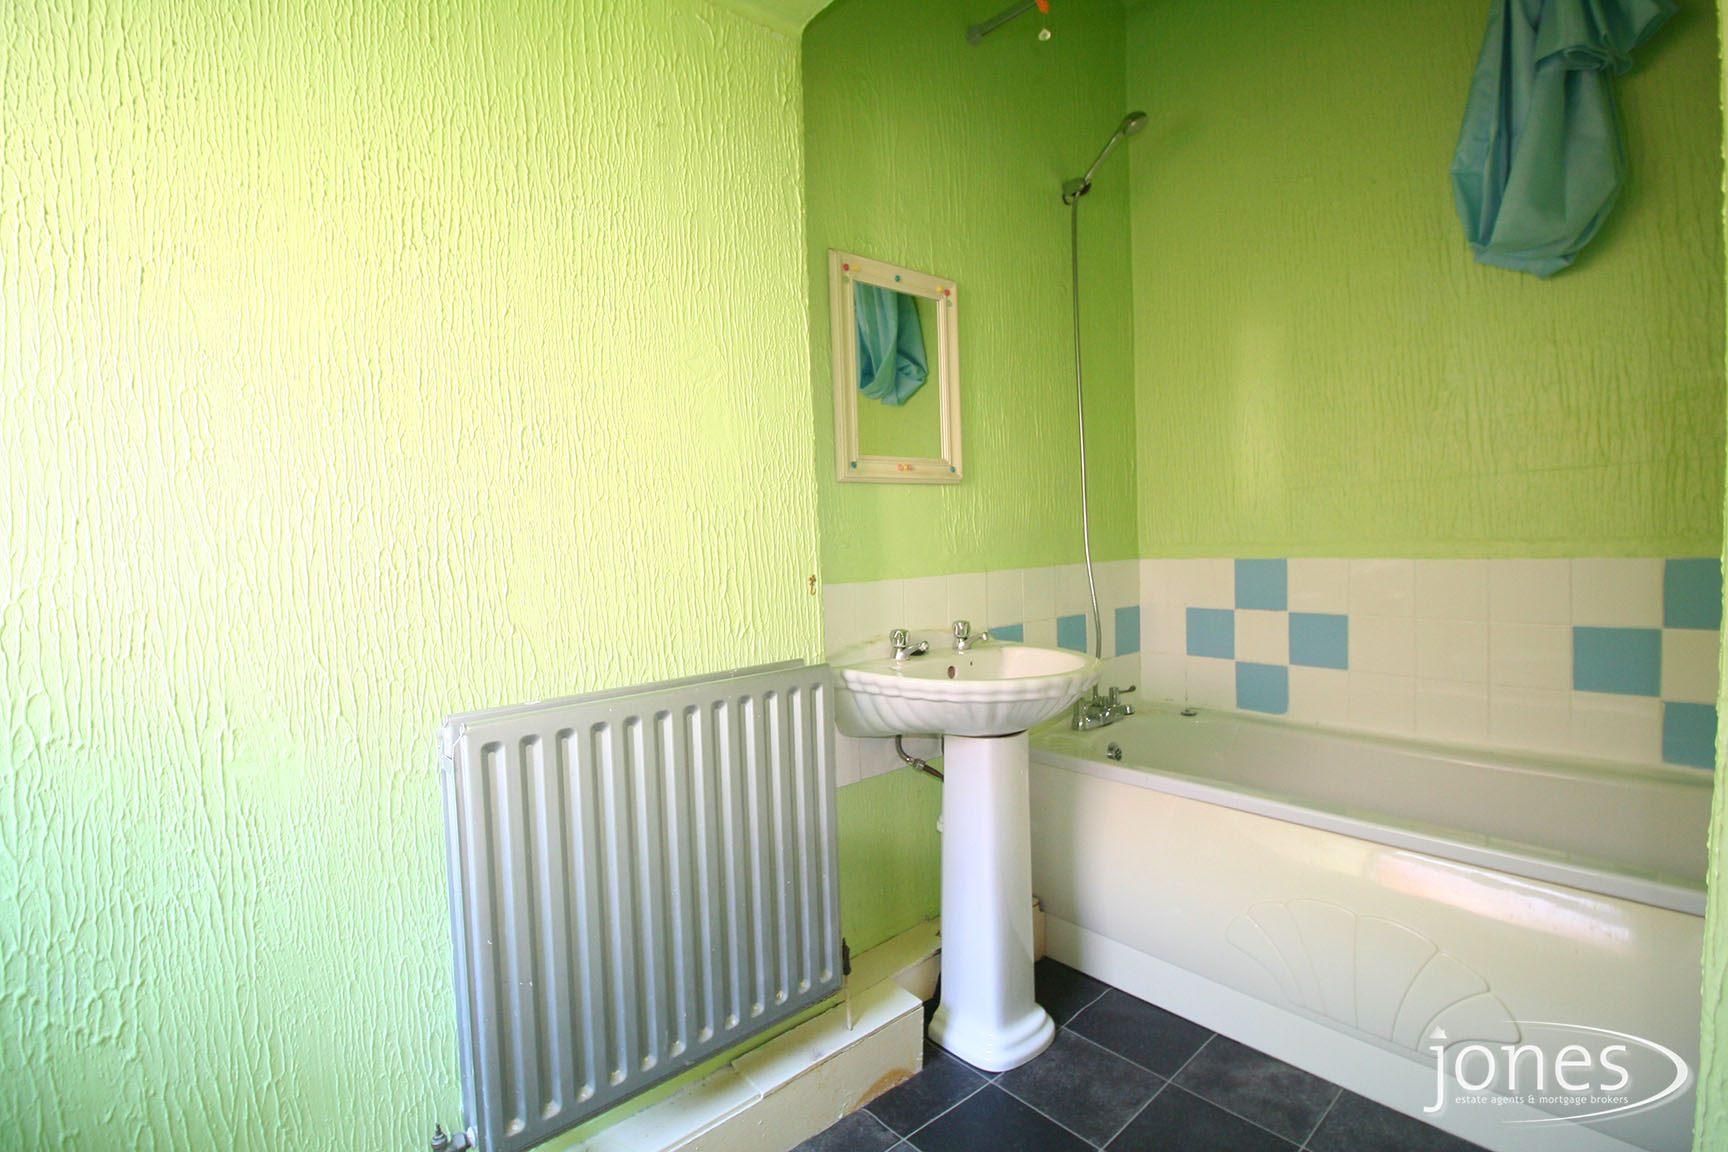 Home for Sale Let - Photo 06 Dent Street, Hartlepool, TS26 8AY